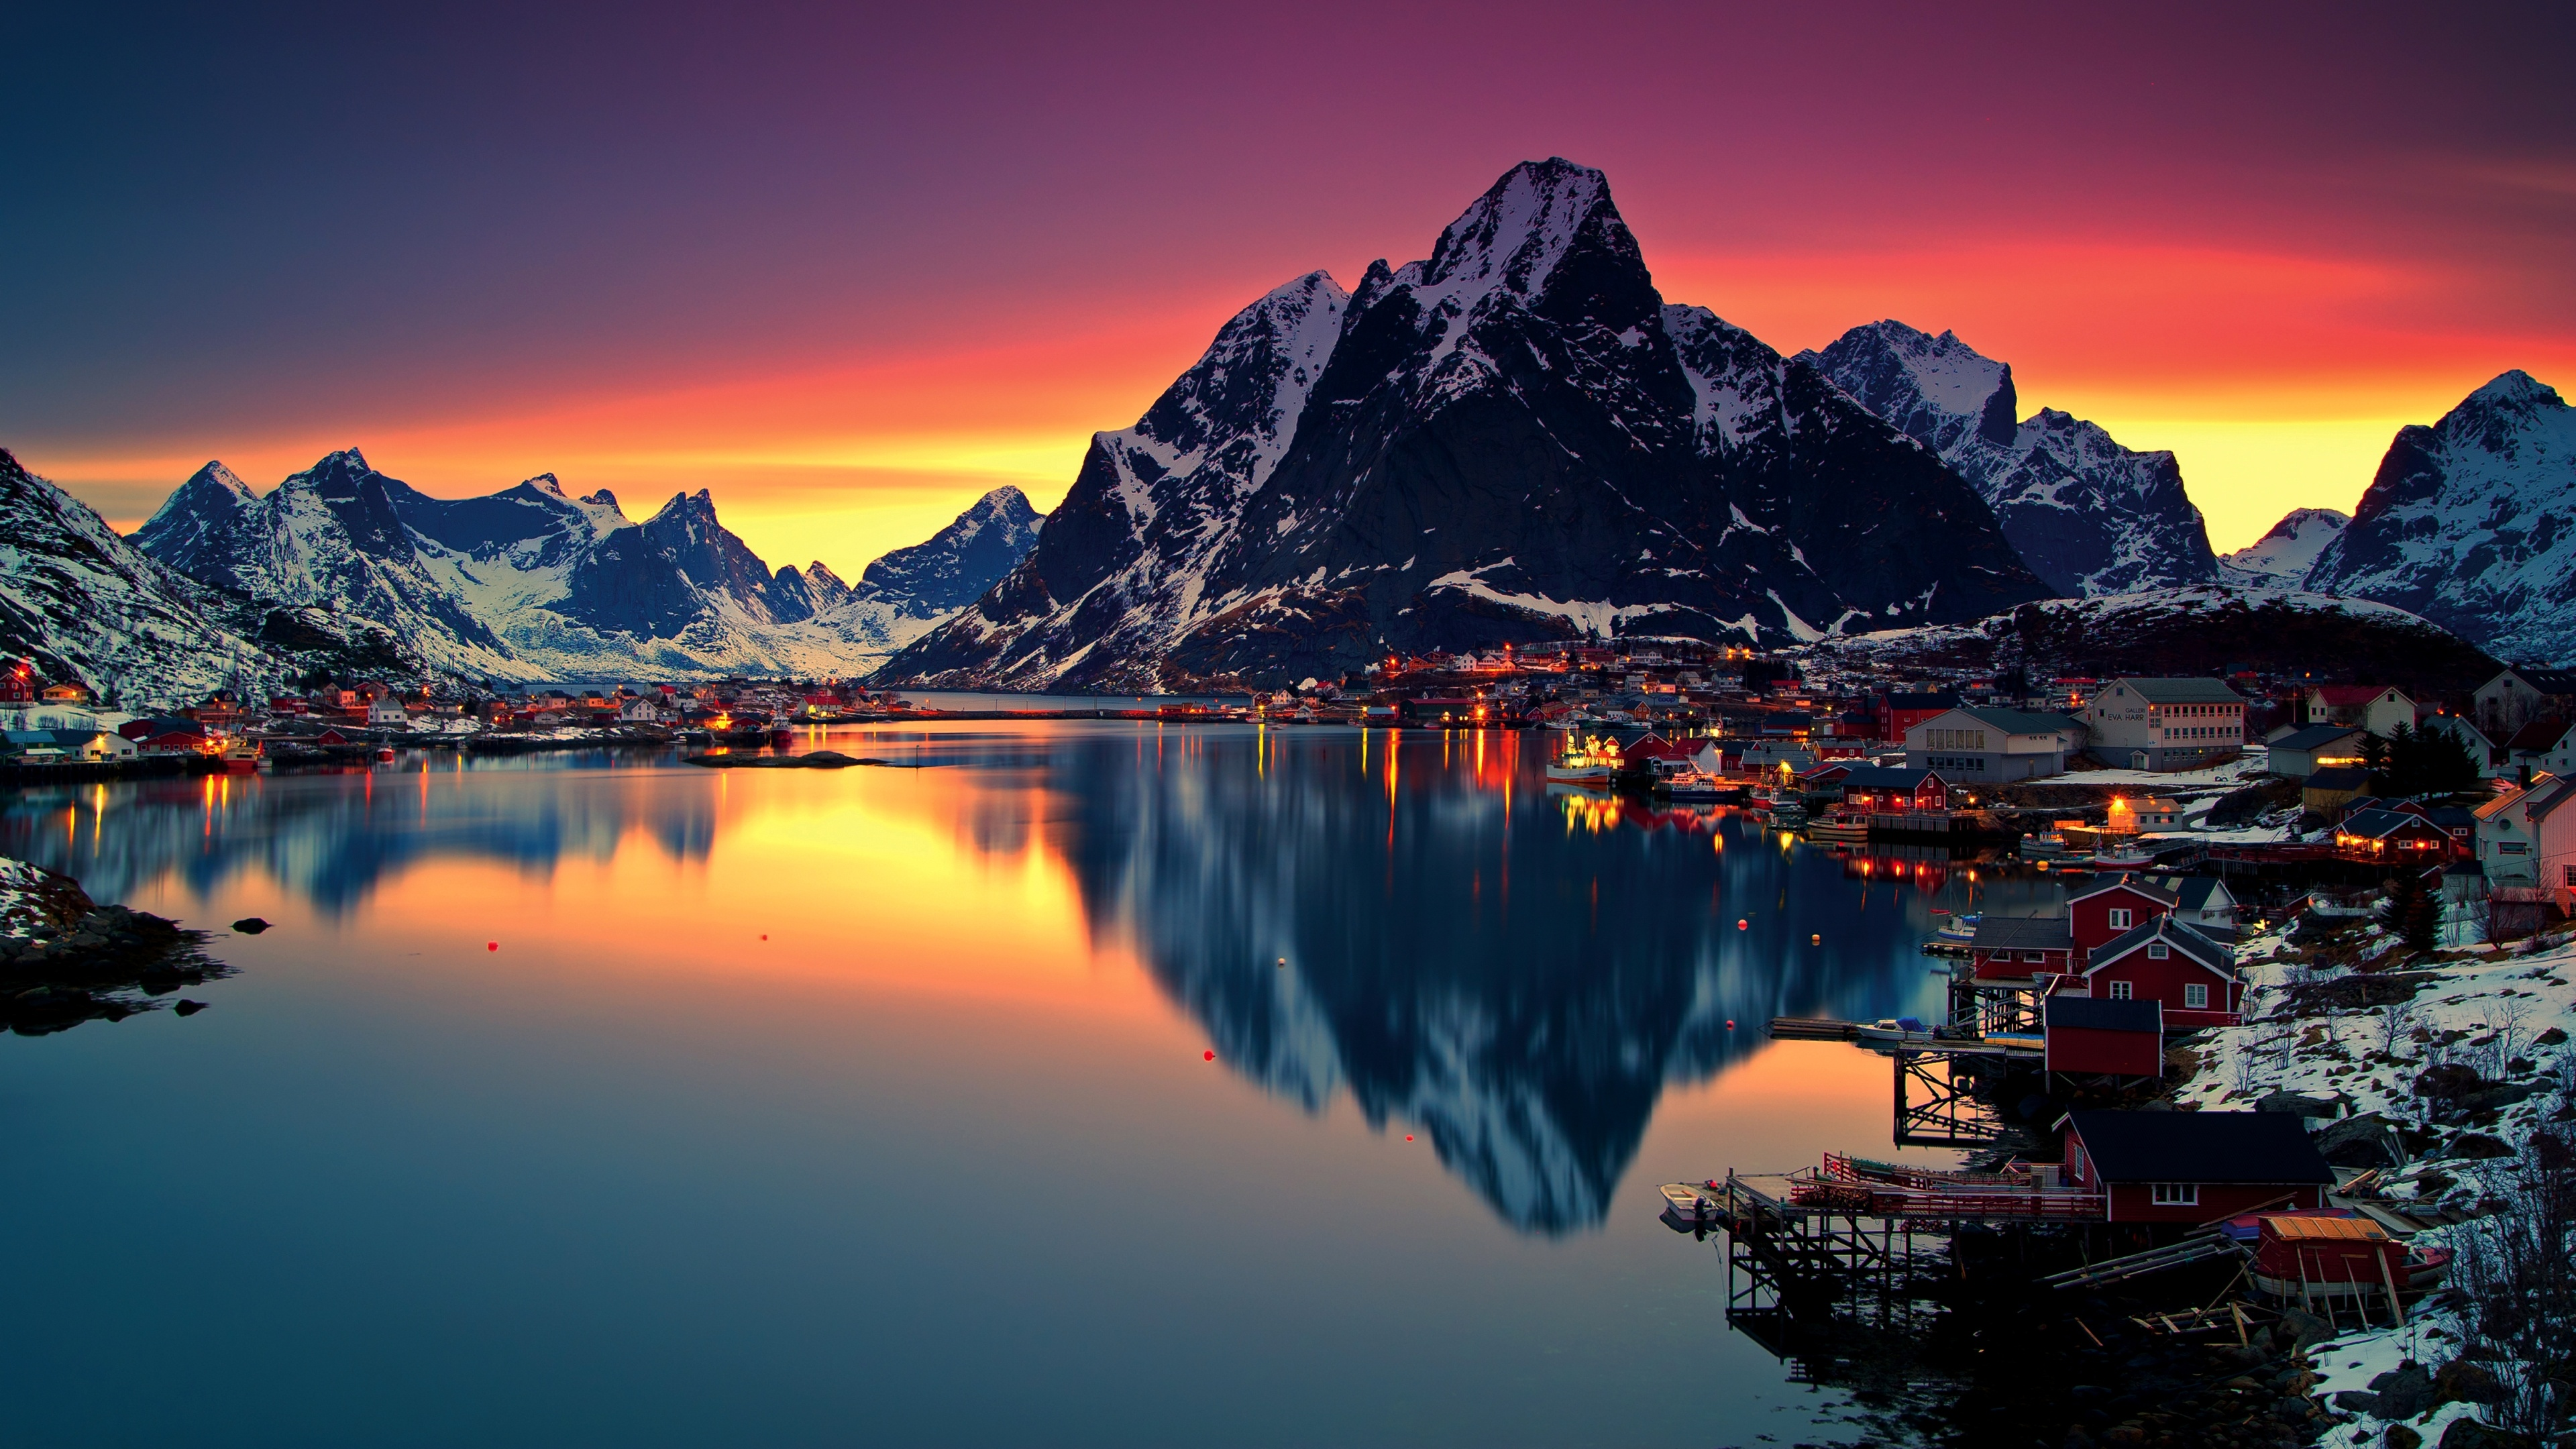 Lofoten Norway Wallpapers - 3840x2160